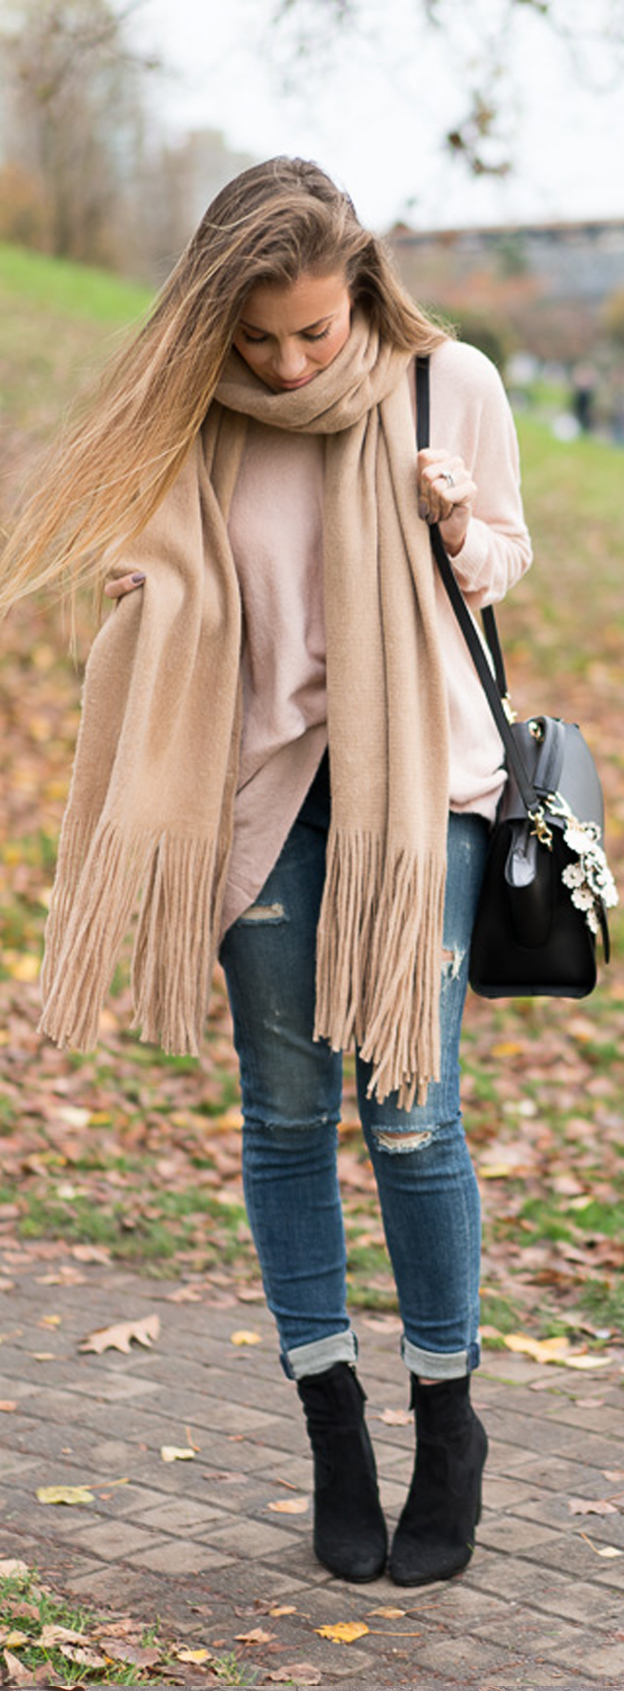 Fall Outfit: Blush Sweater - Legging Ankle Jeans - Scarf - Booties - Zac Zac Posen Handbag - Spring Earthette Floral Charm. Angela Lanter - Hello Gorgeous.